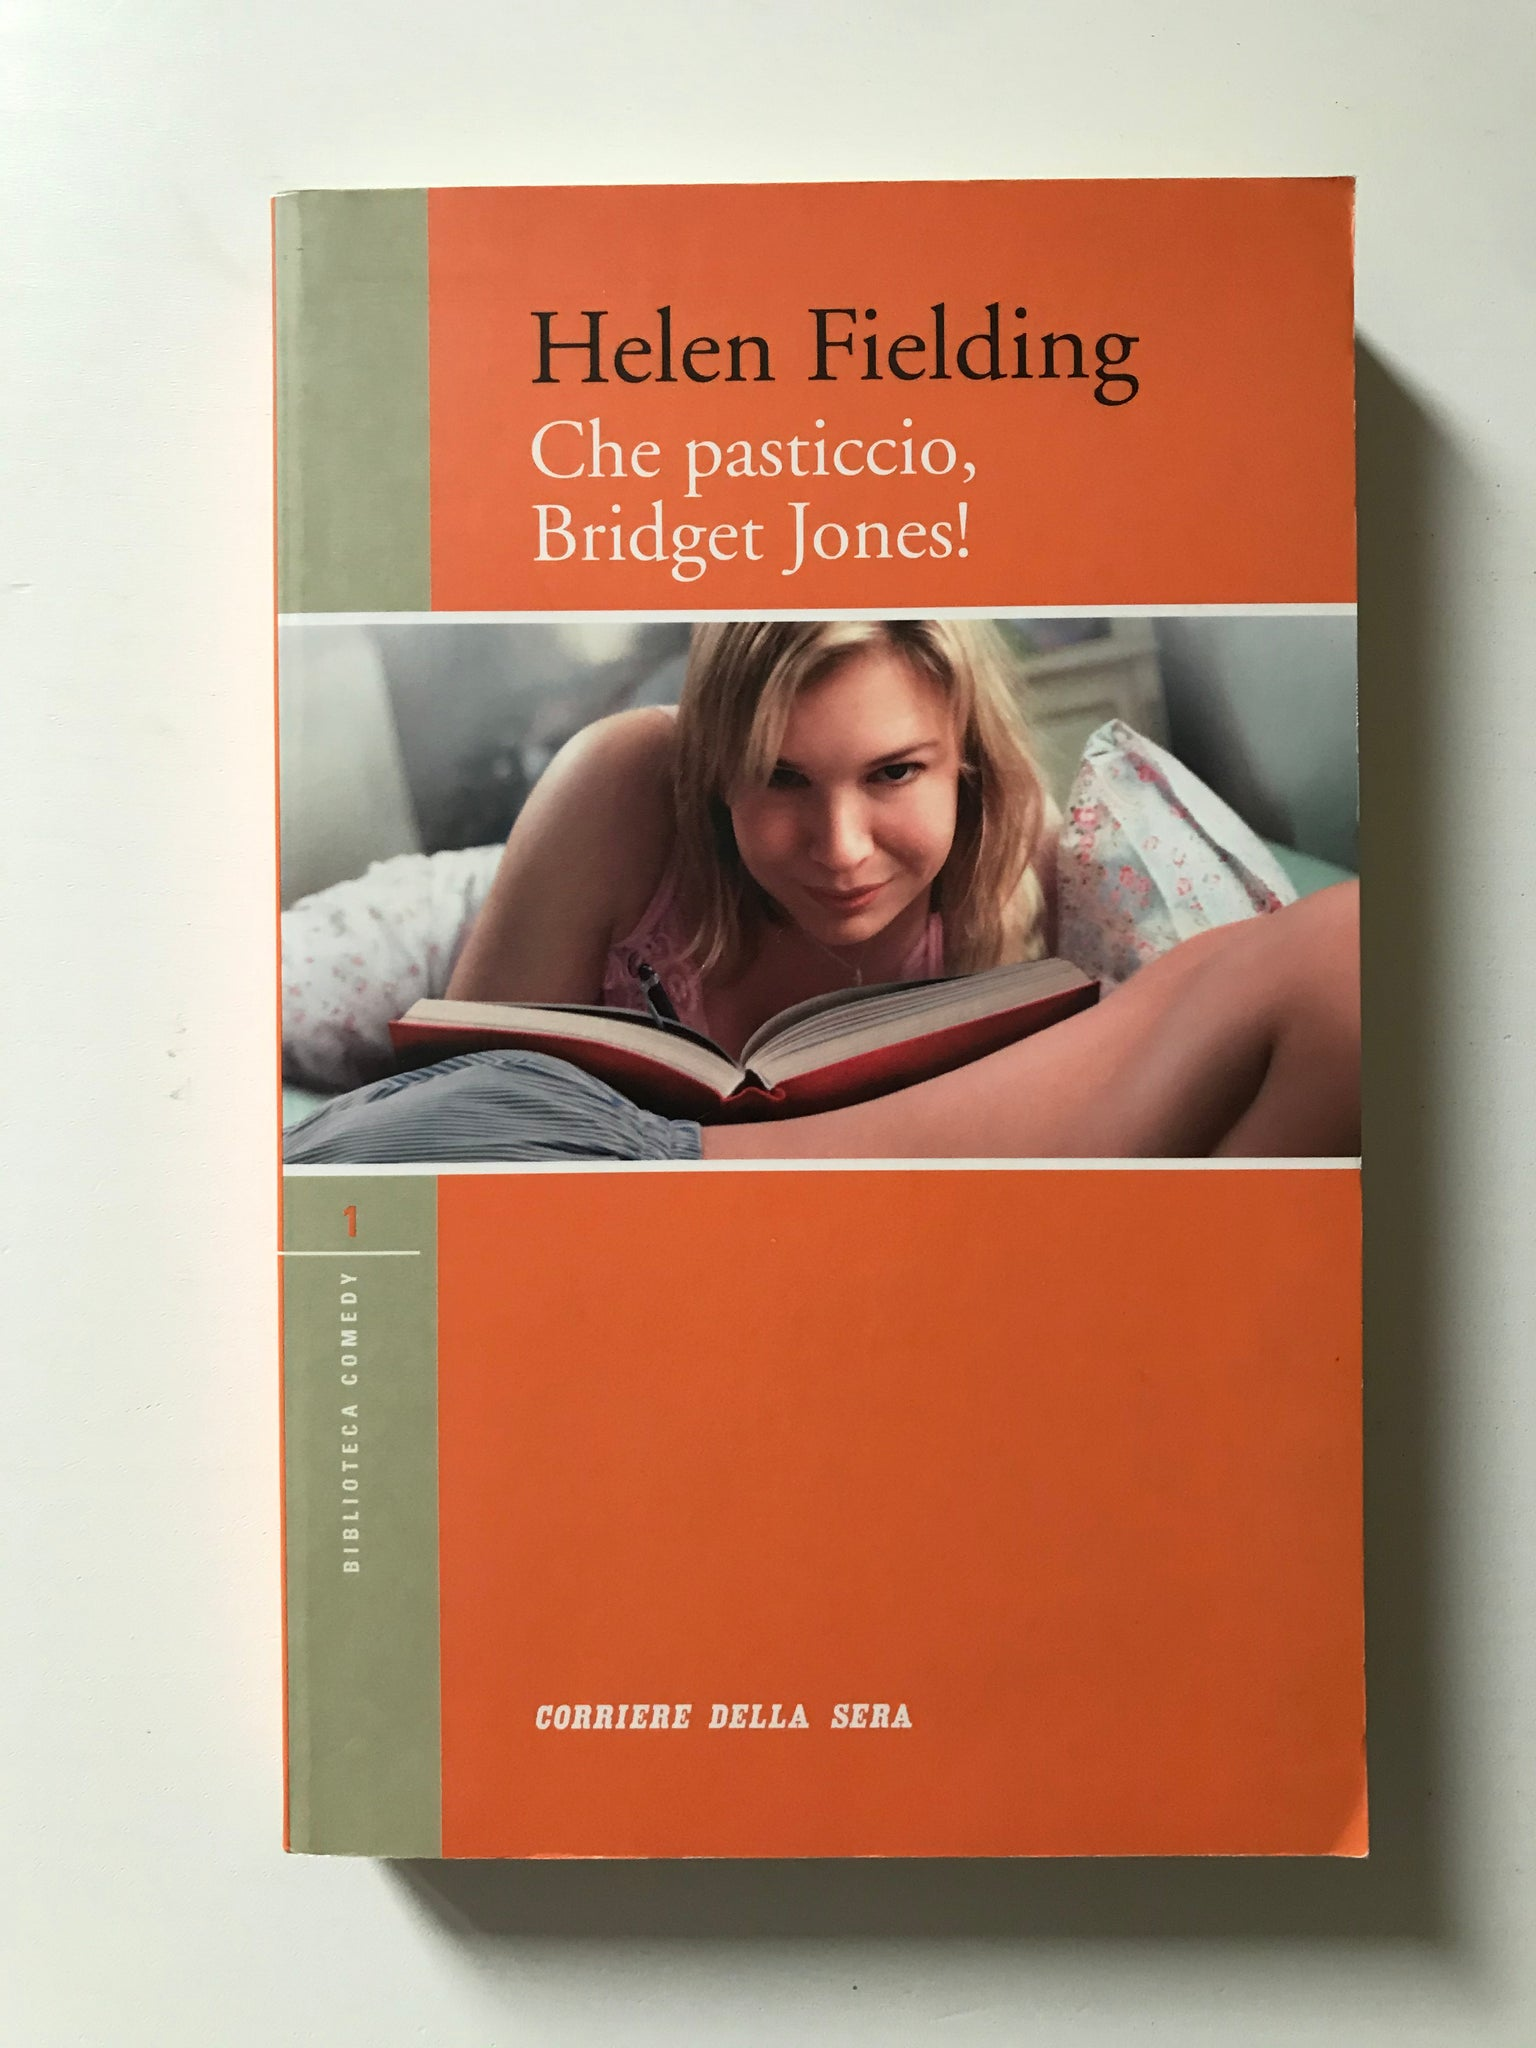 Helen Fielding - Che pasticcio Bridget Jones!